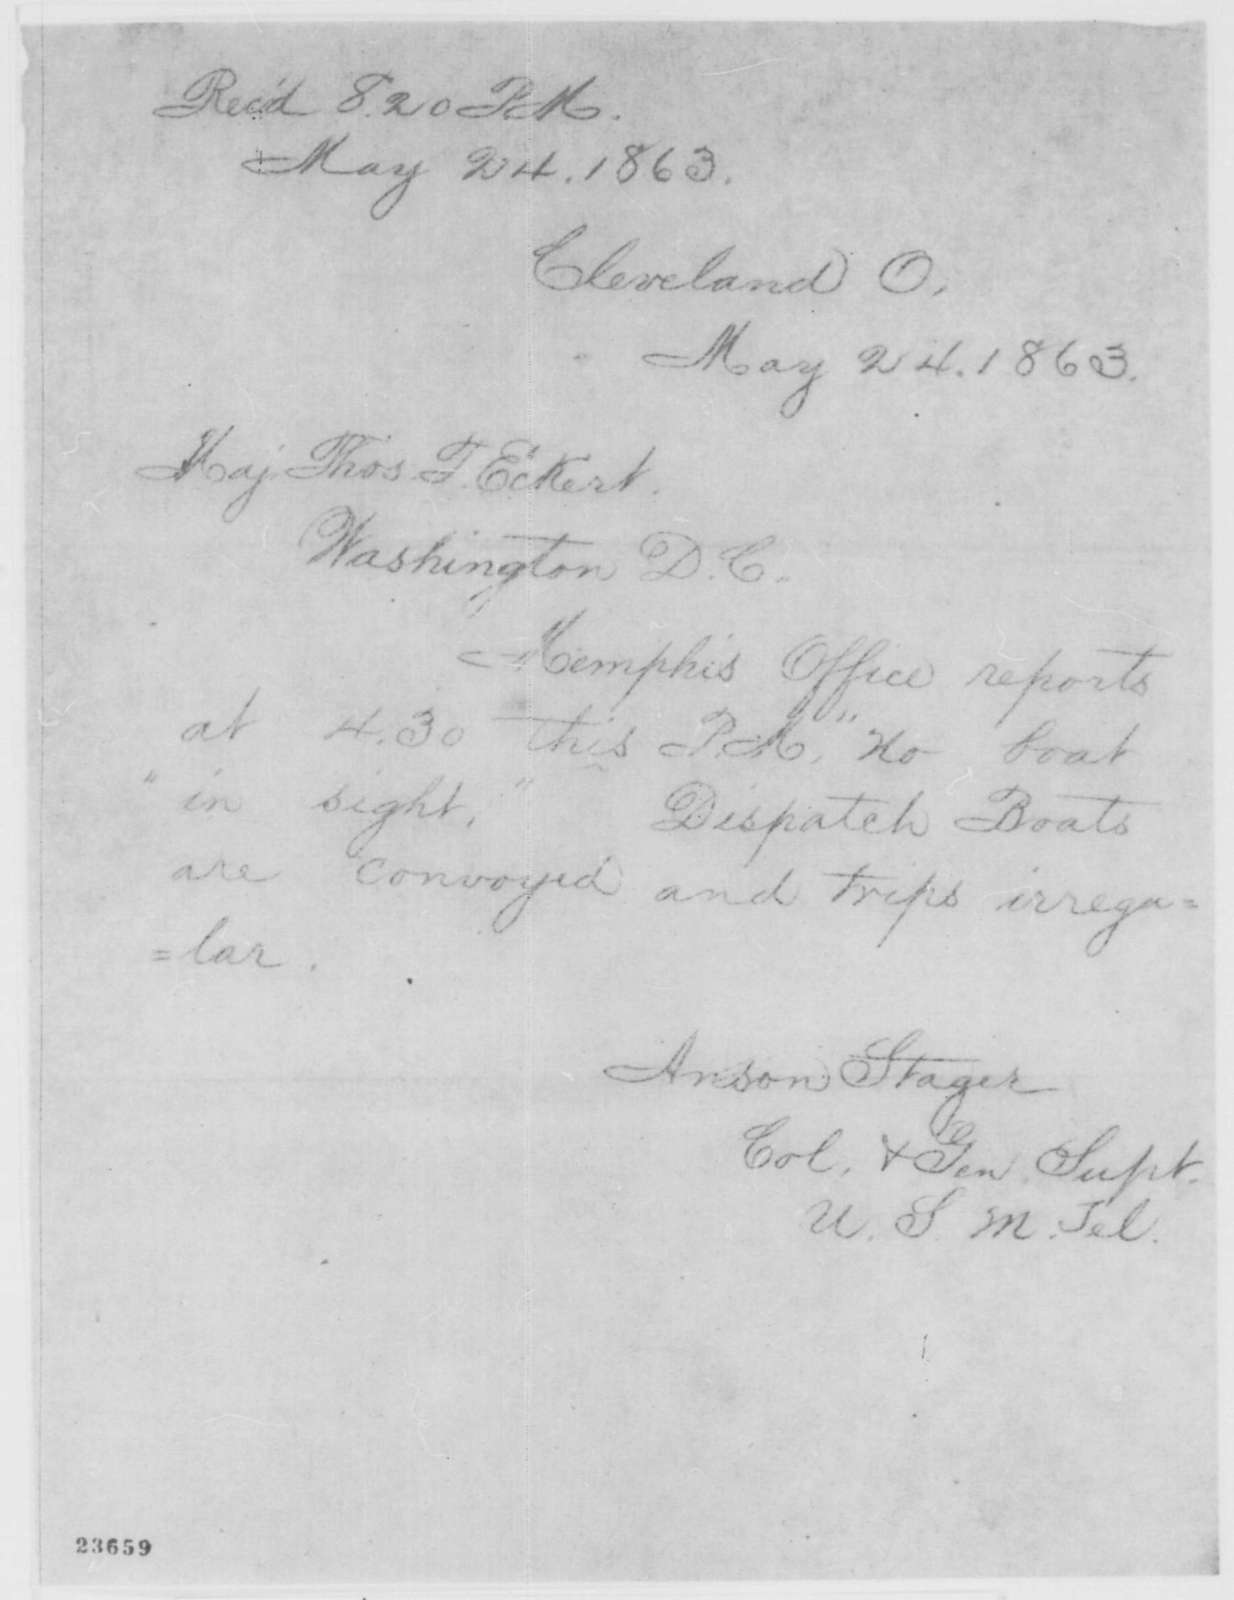 Anson Stager to Thomas T. Eckert, Sunday, May 24, 1863  (Telegram regarding arrival of boats)